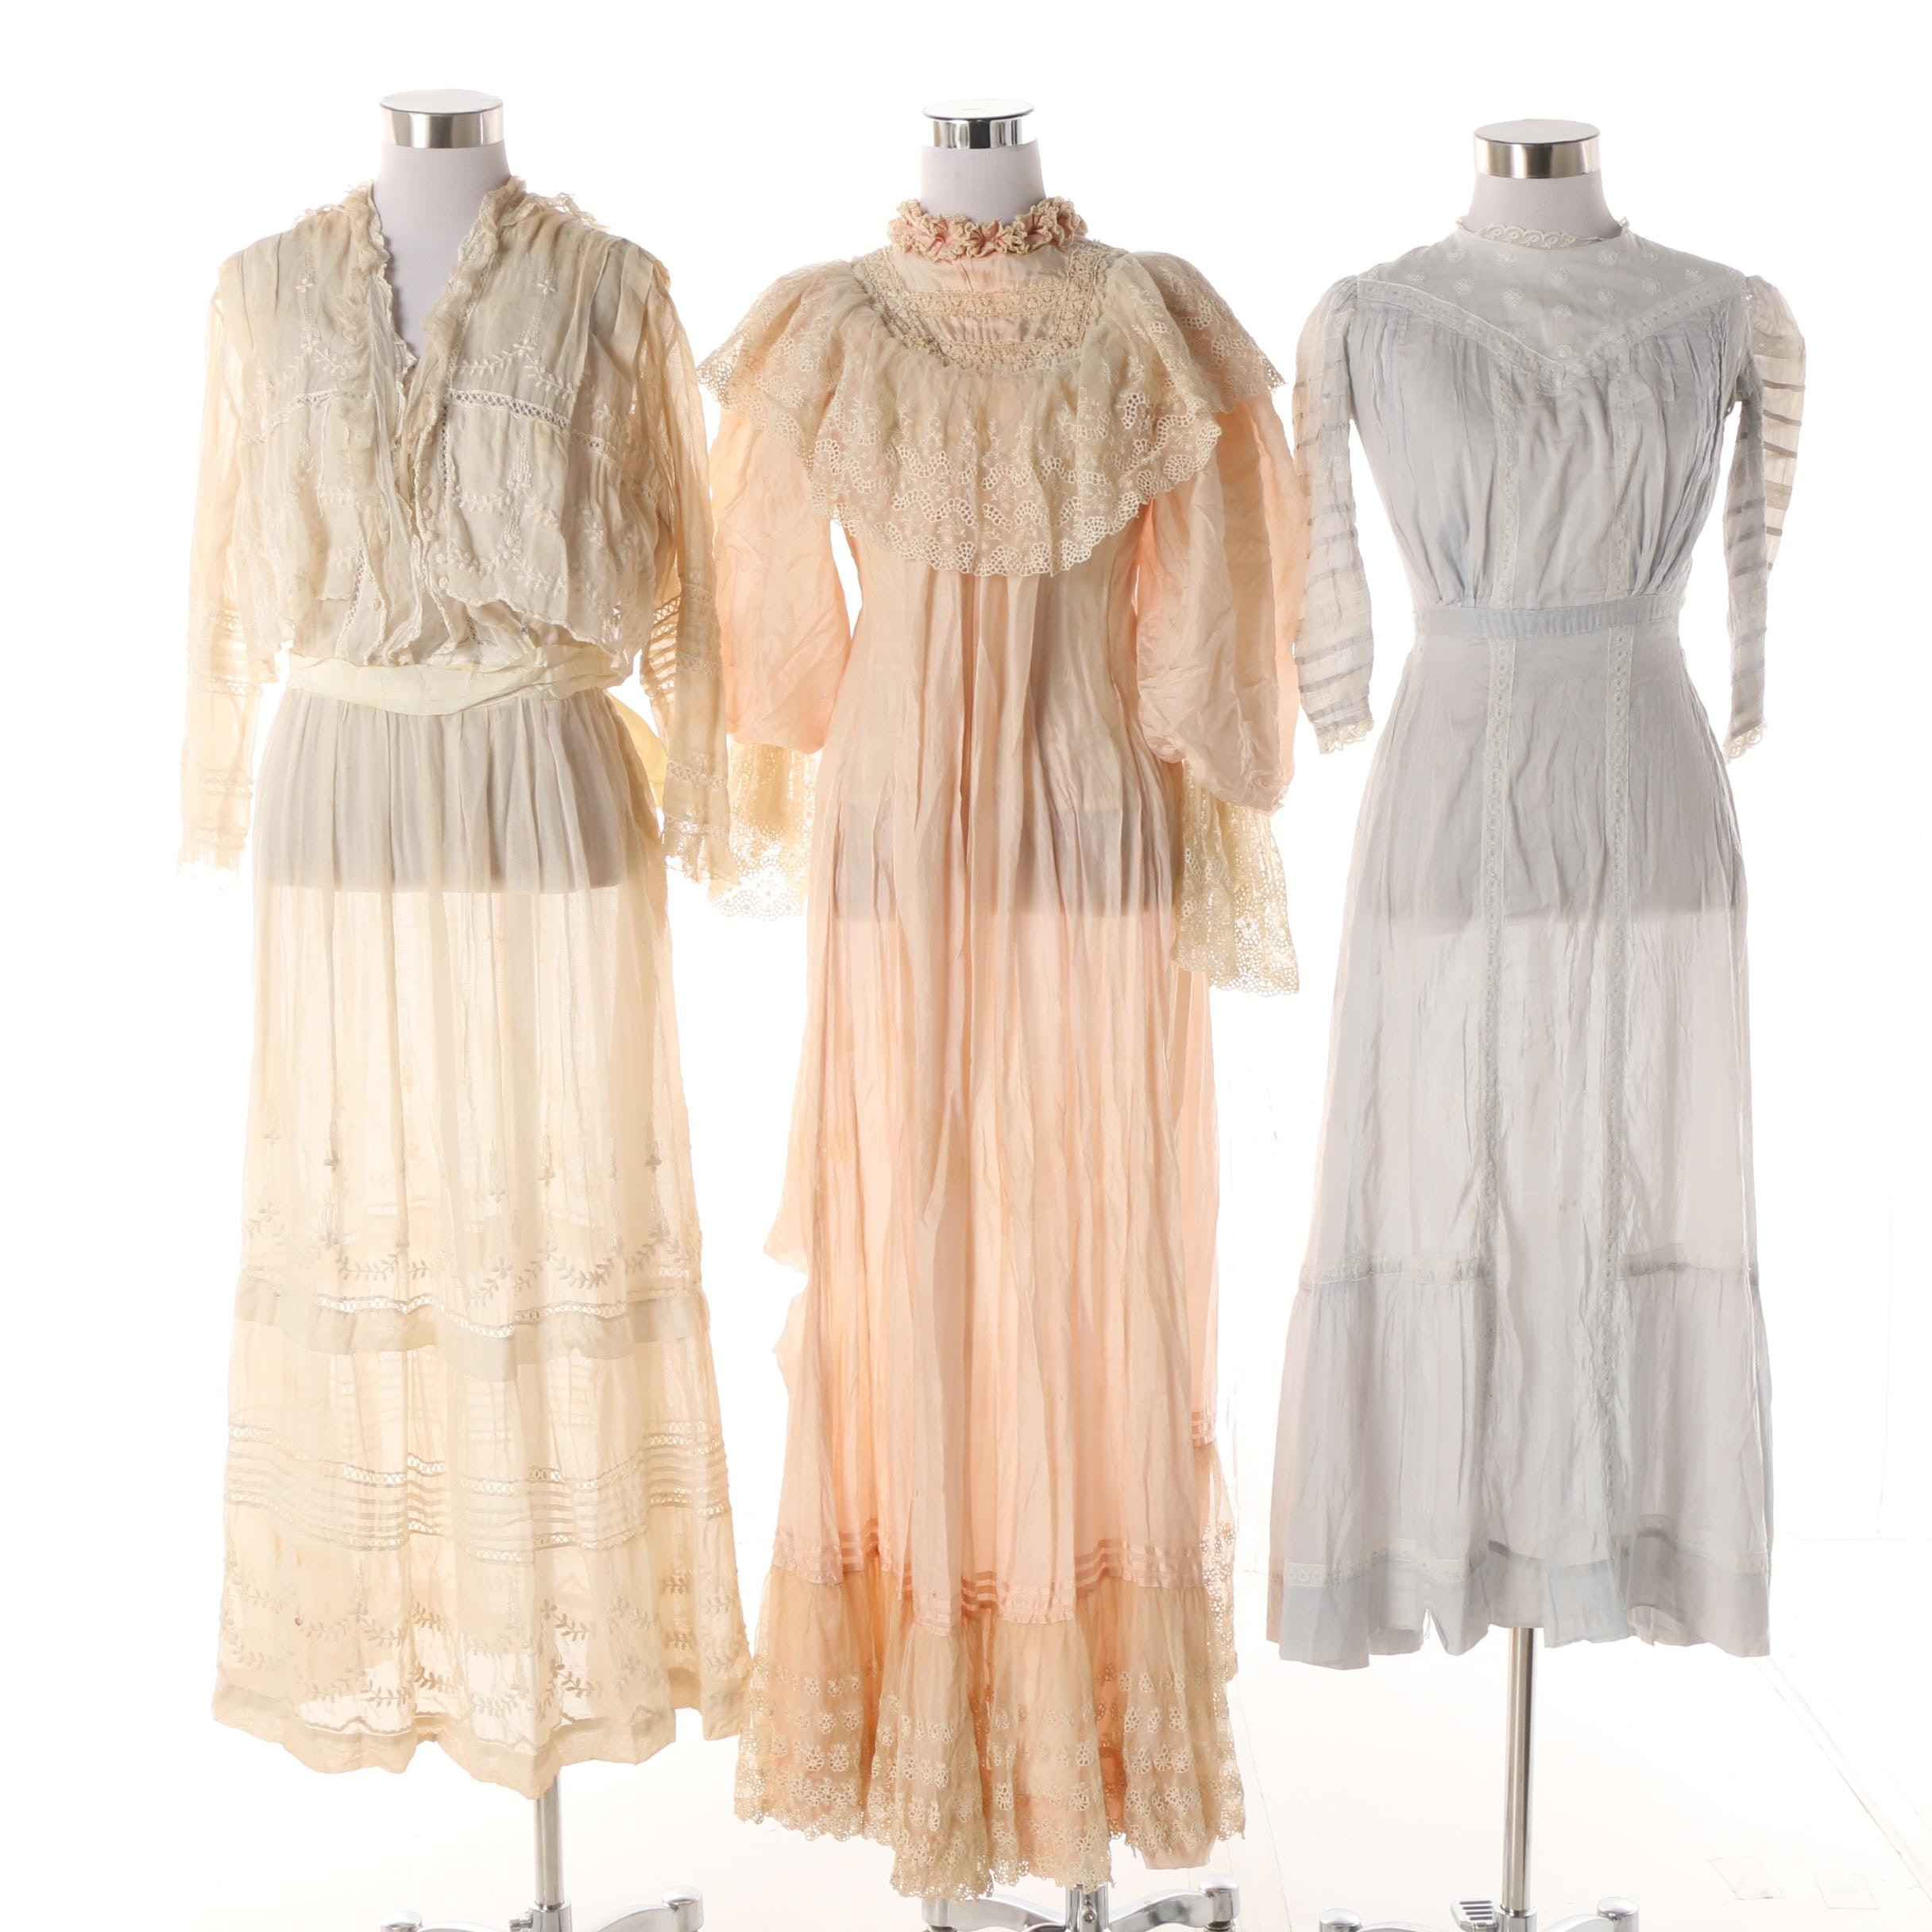 1900s Antique Tea and Day Dresses with Embroidered, Lace and Crochet Accents